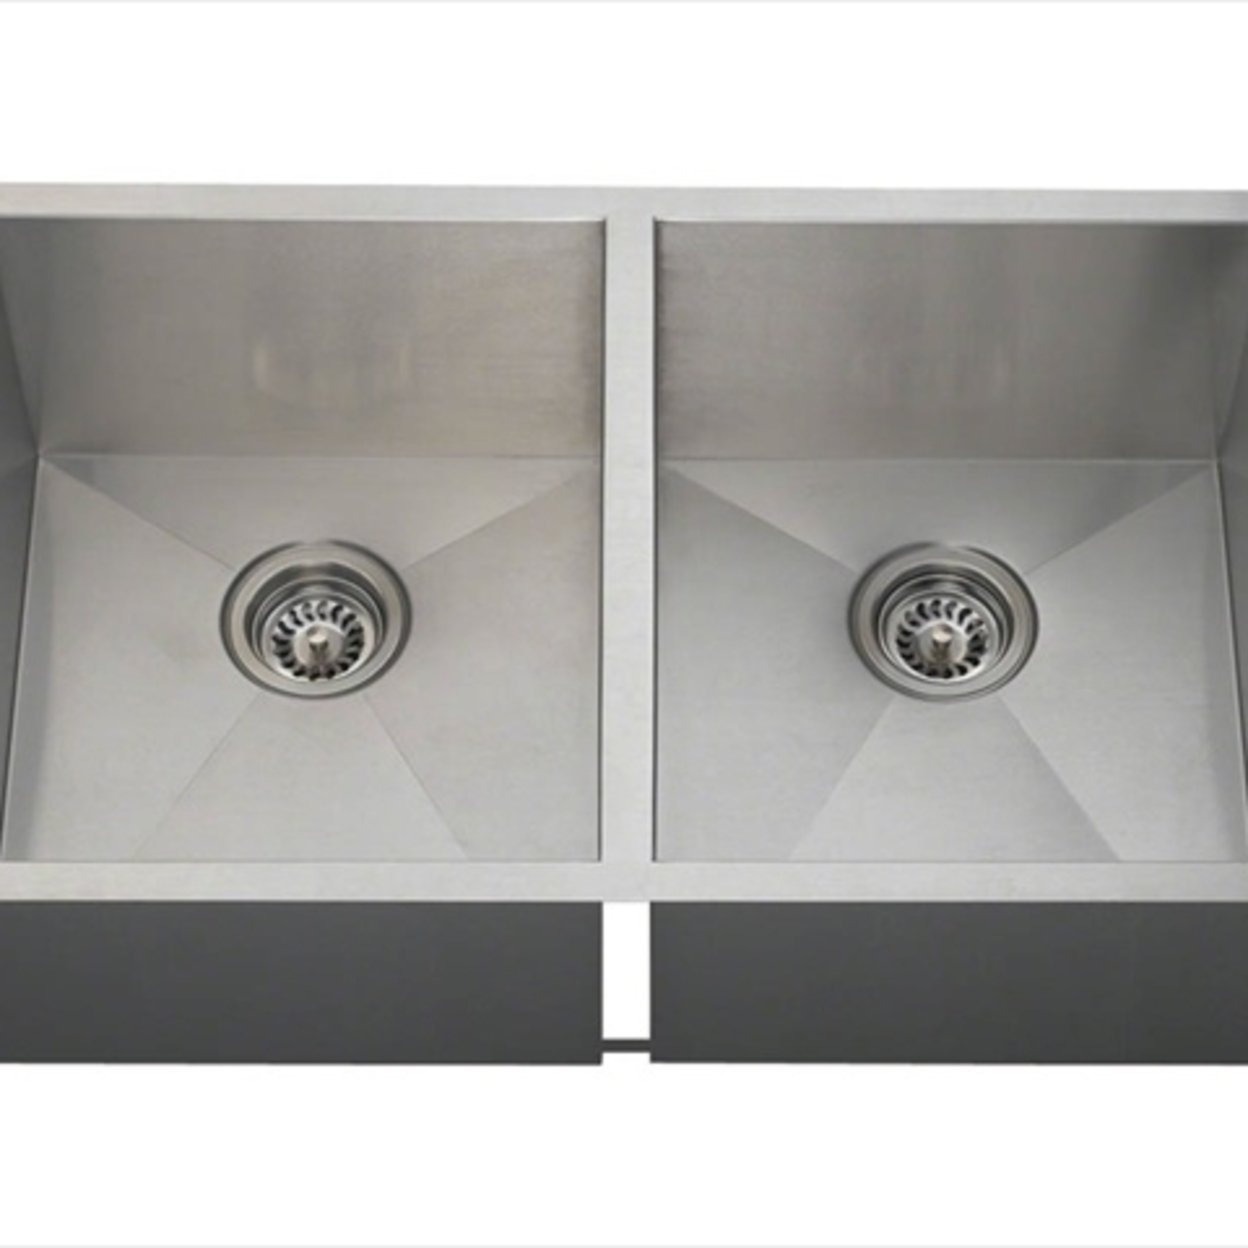 MR Direct 3322D Double Equal Bowl Rectangular Stainless Steel Kitchen Sink 5a3d41102a00e45b087458e7